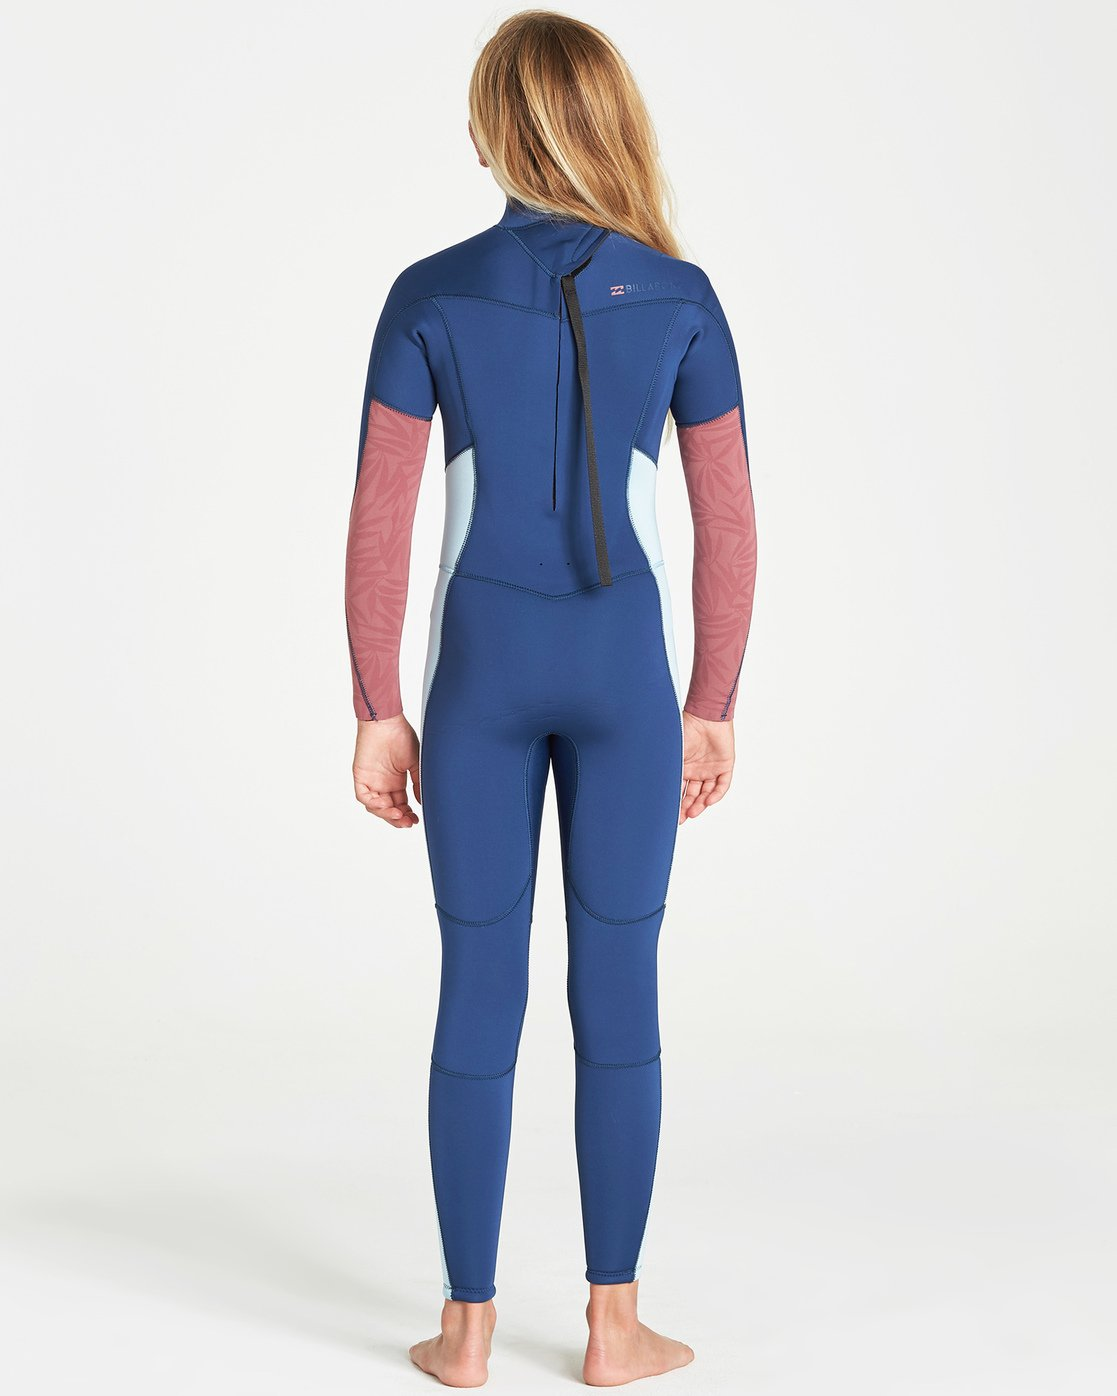 Back zip entry Pacific Easy Stretch BILLABONG Womens Launch 4//3mm Back Zip GBS Wetsuit